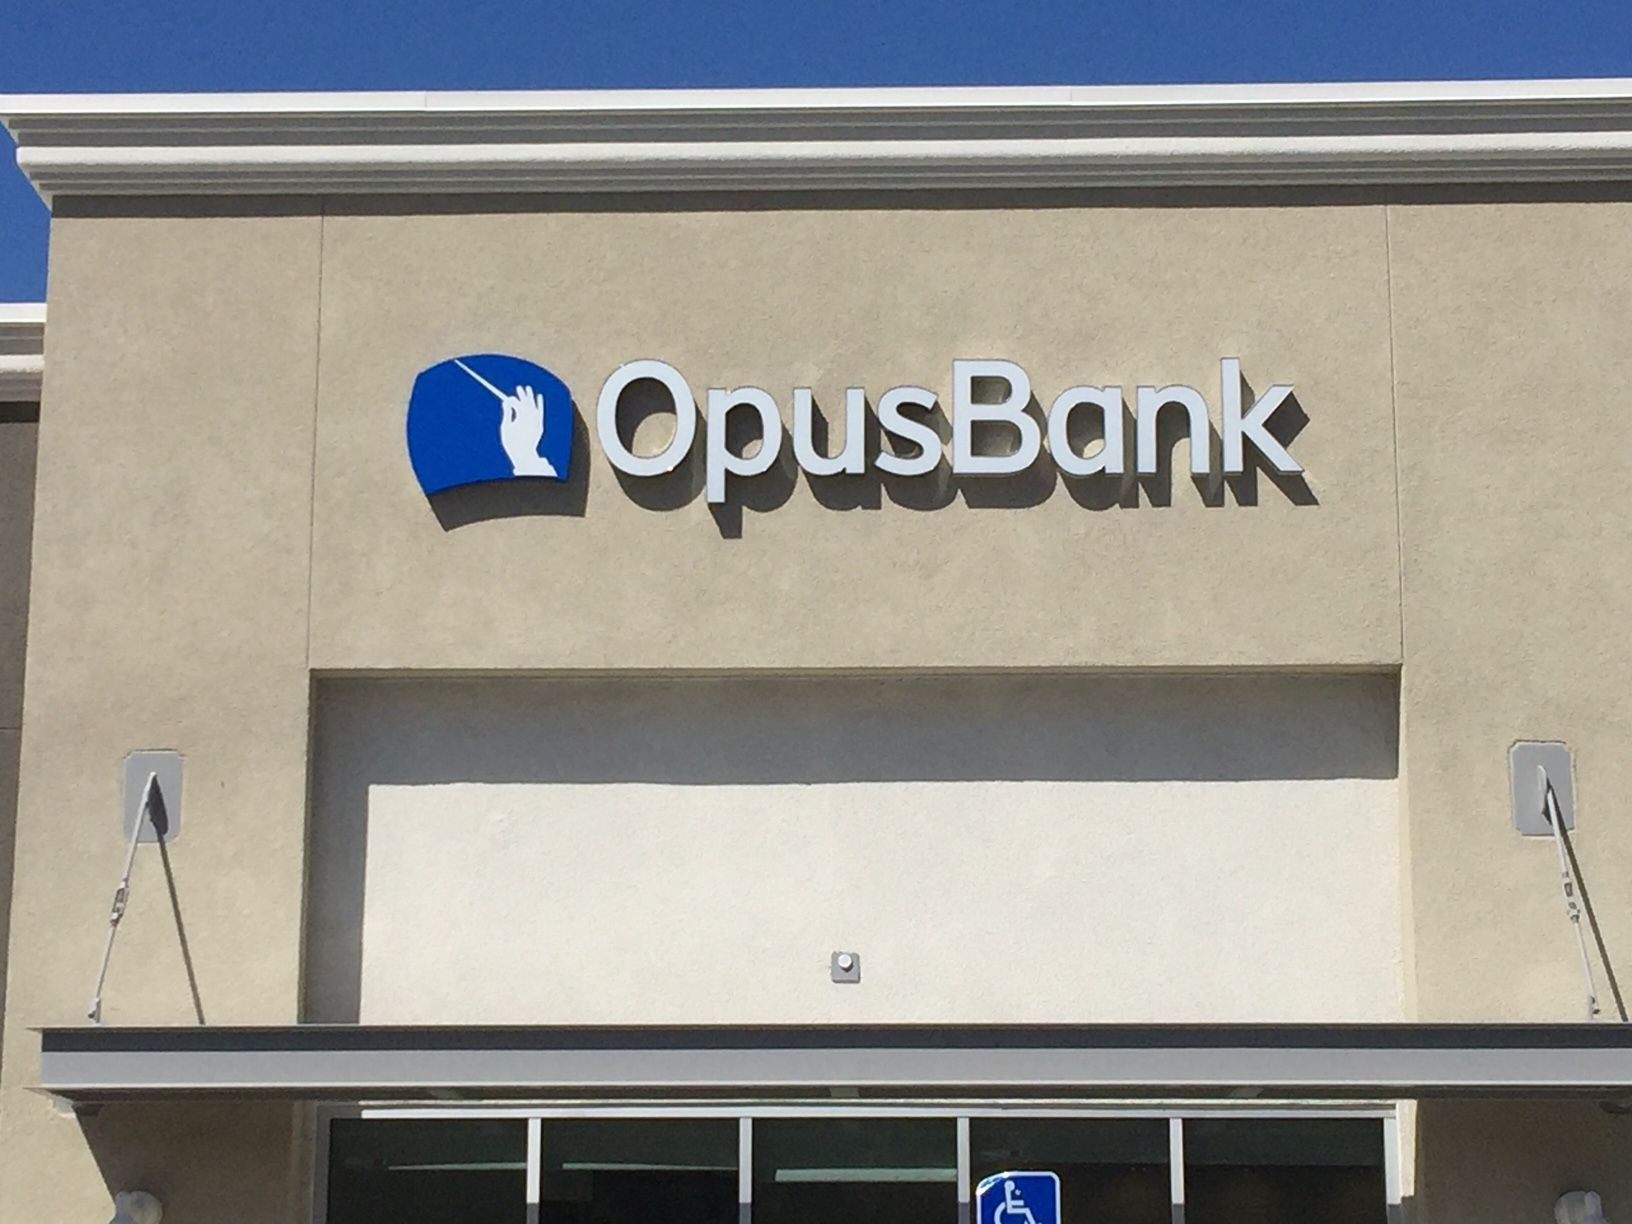 Signs for Banks & Financial Institutions